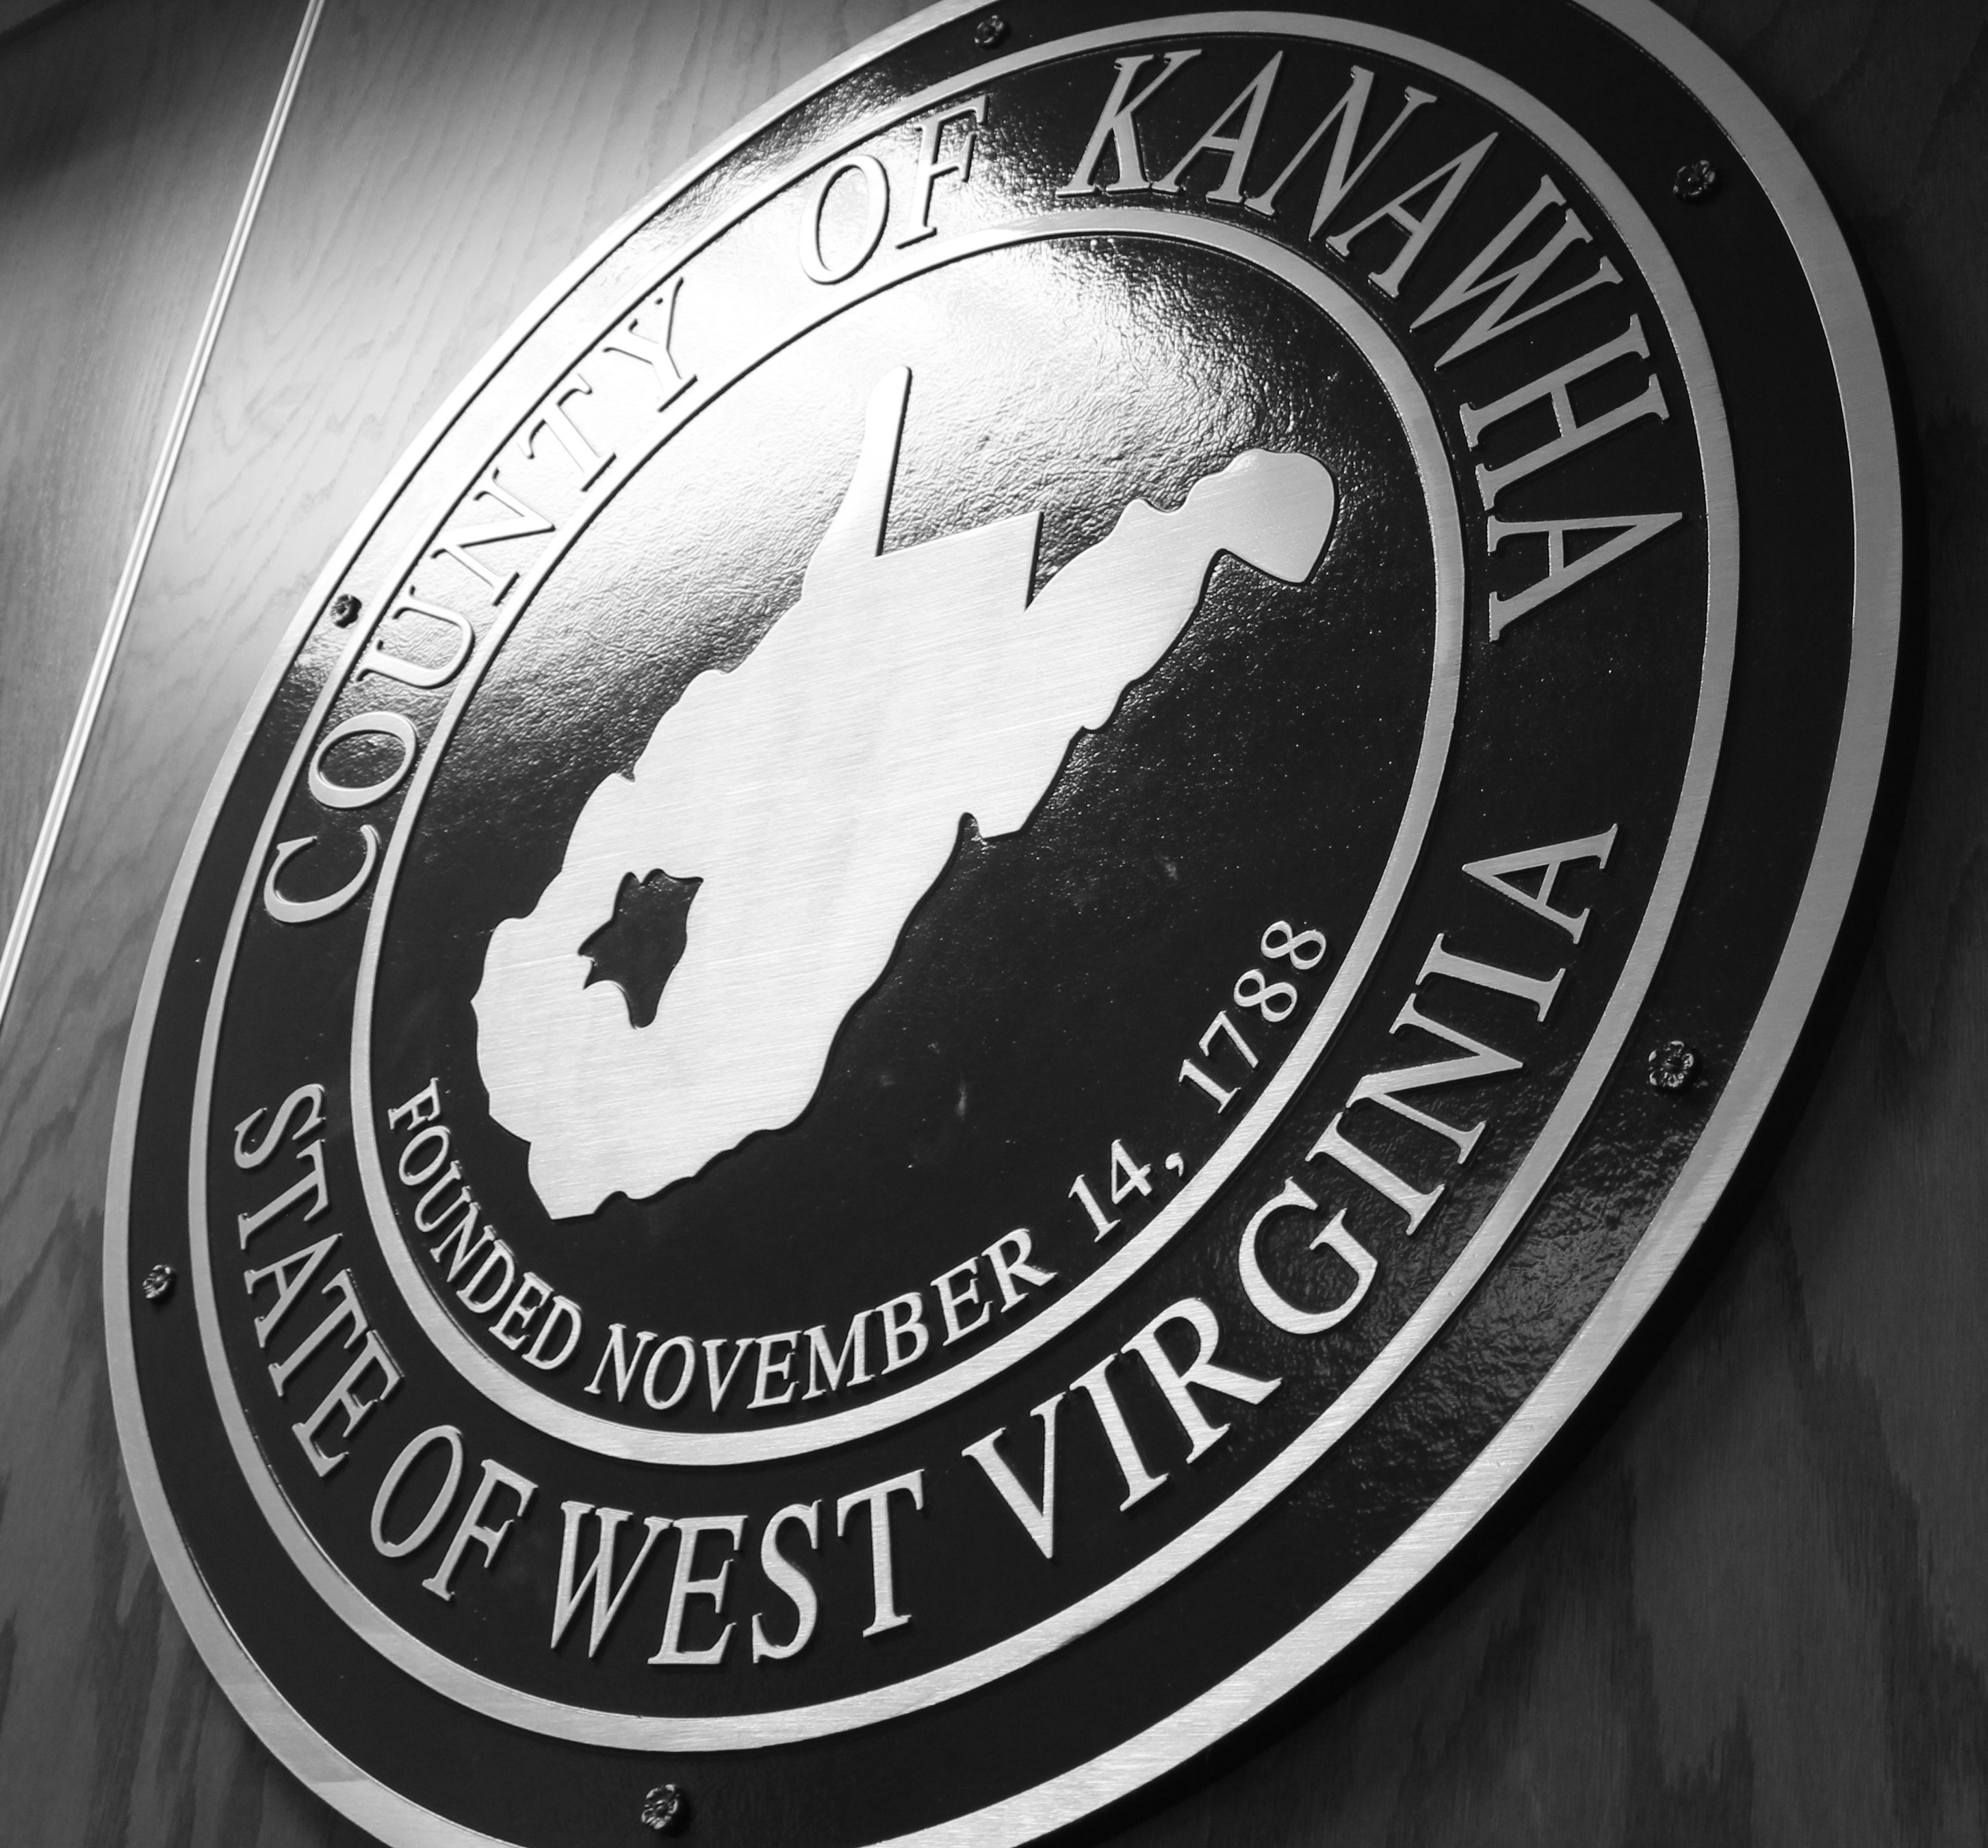 Seal of Kanawha County WV